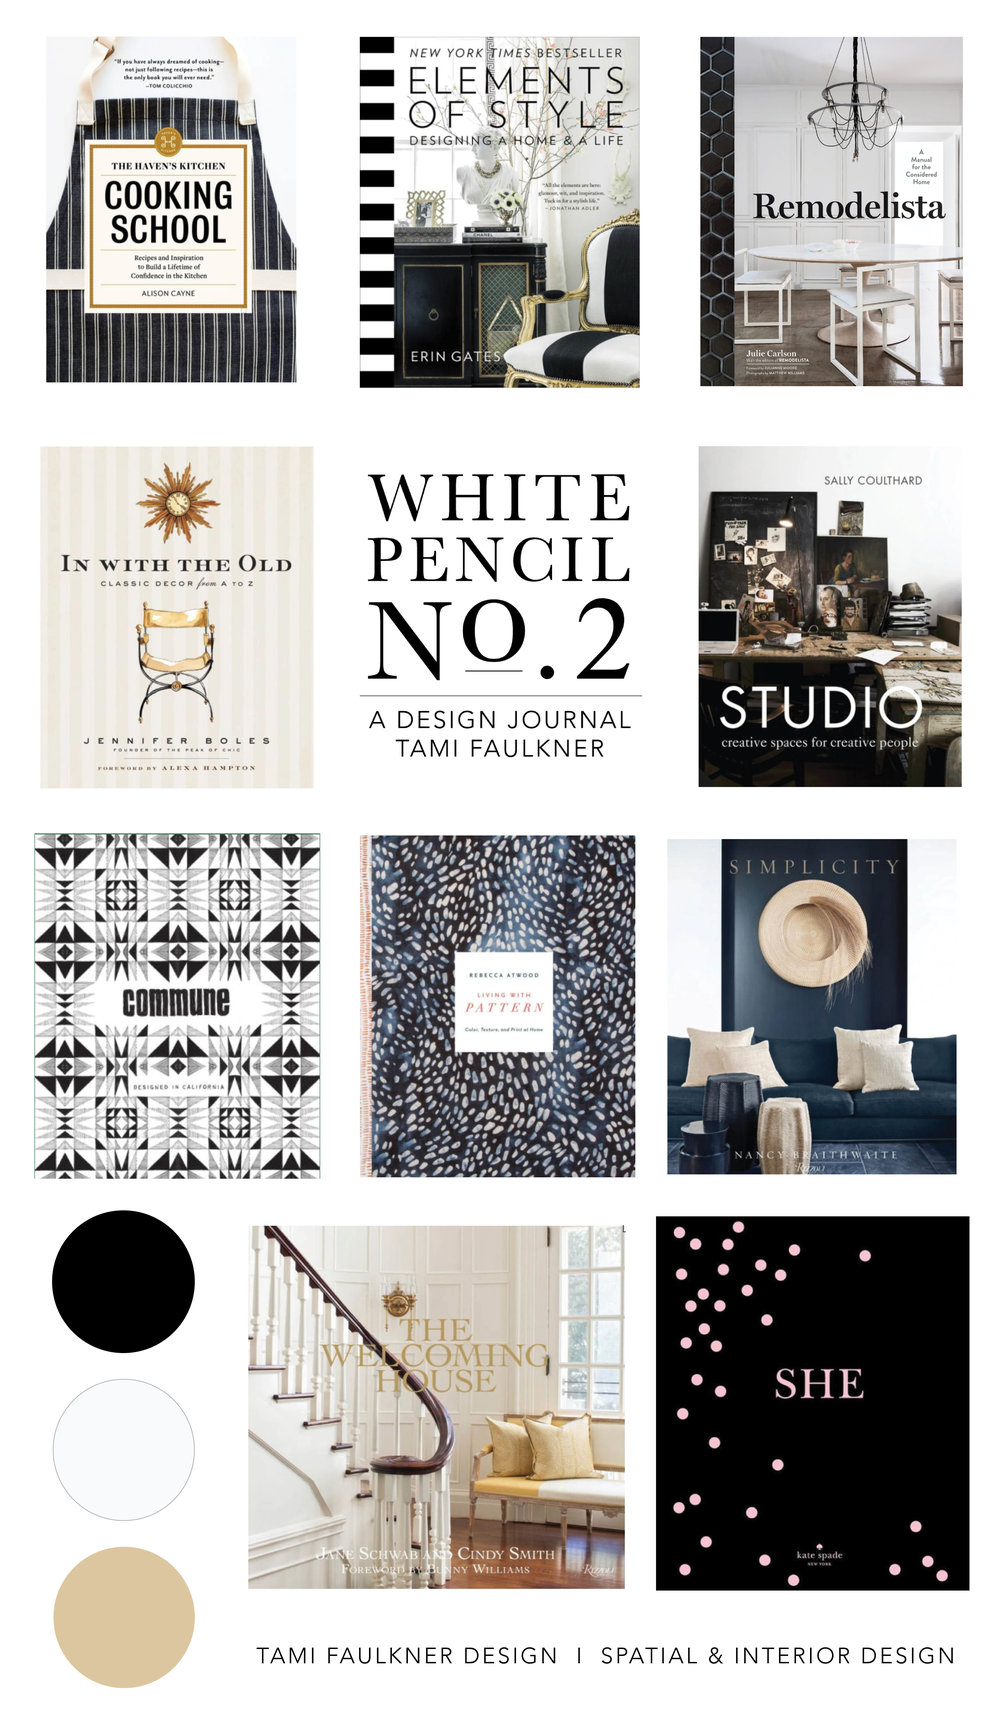 tami faulkner design favorite design books